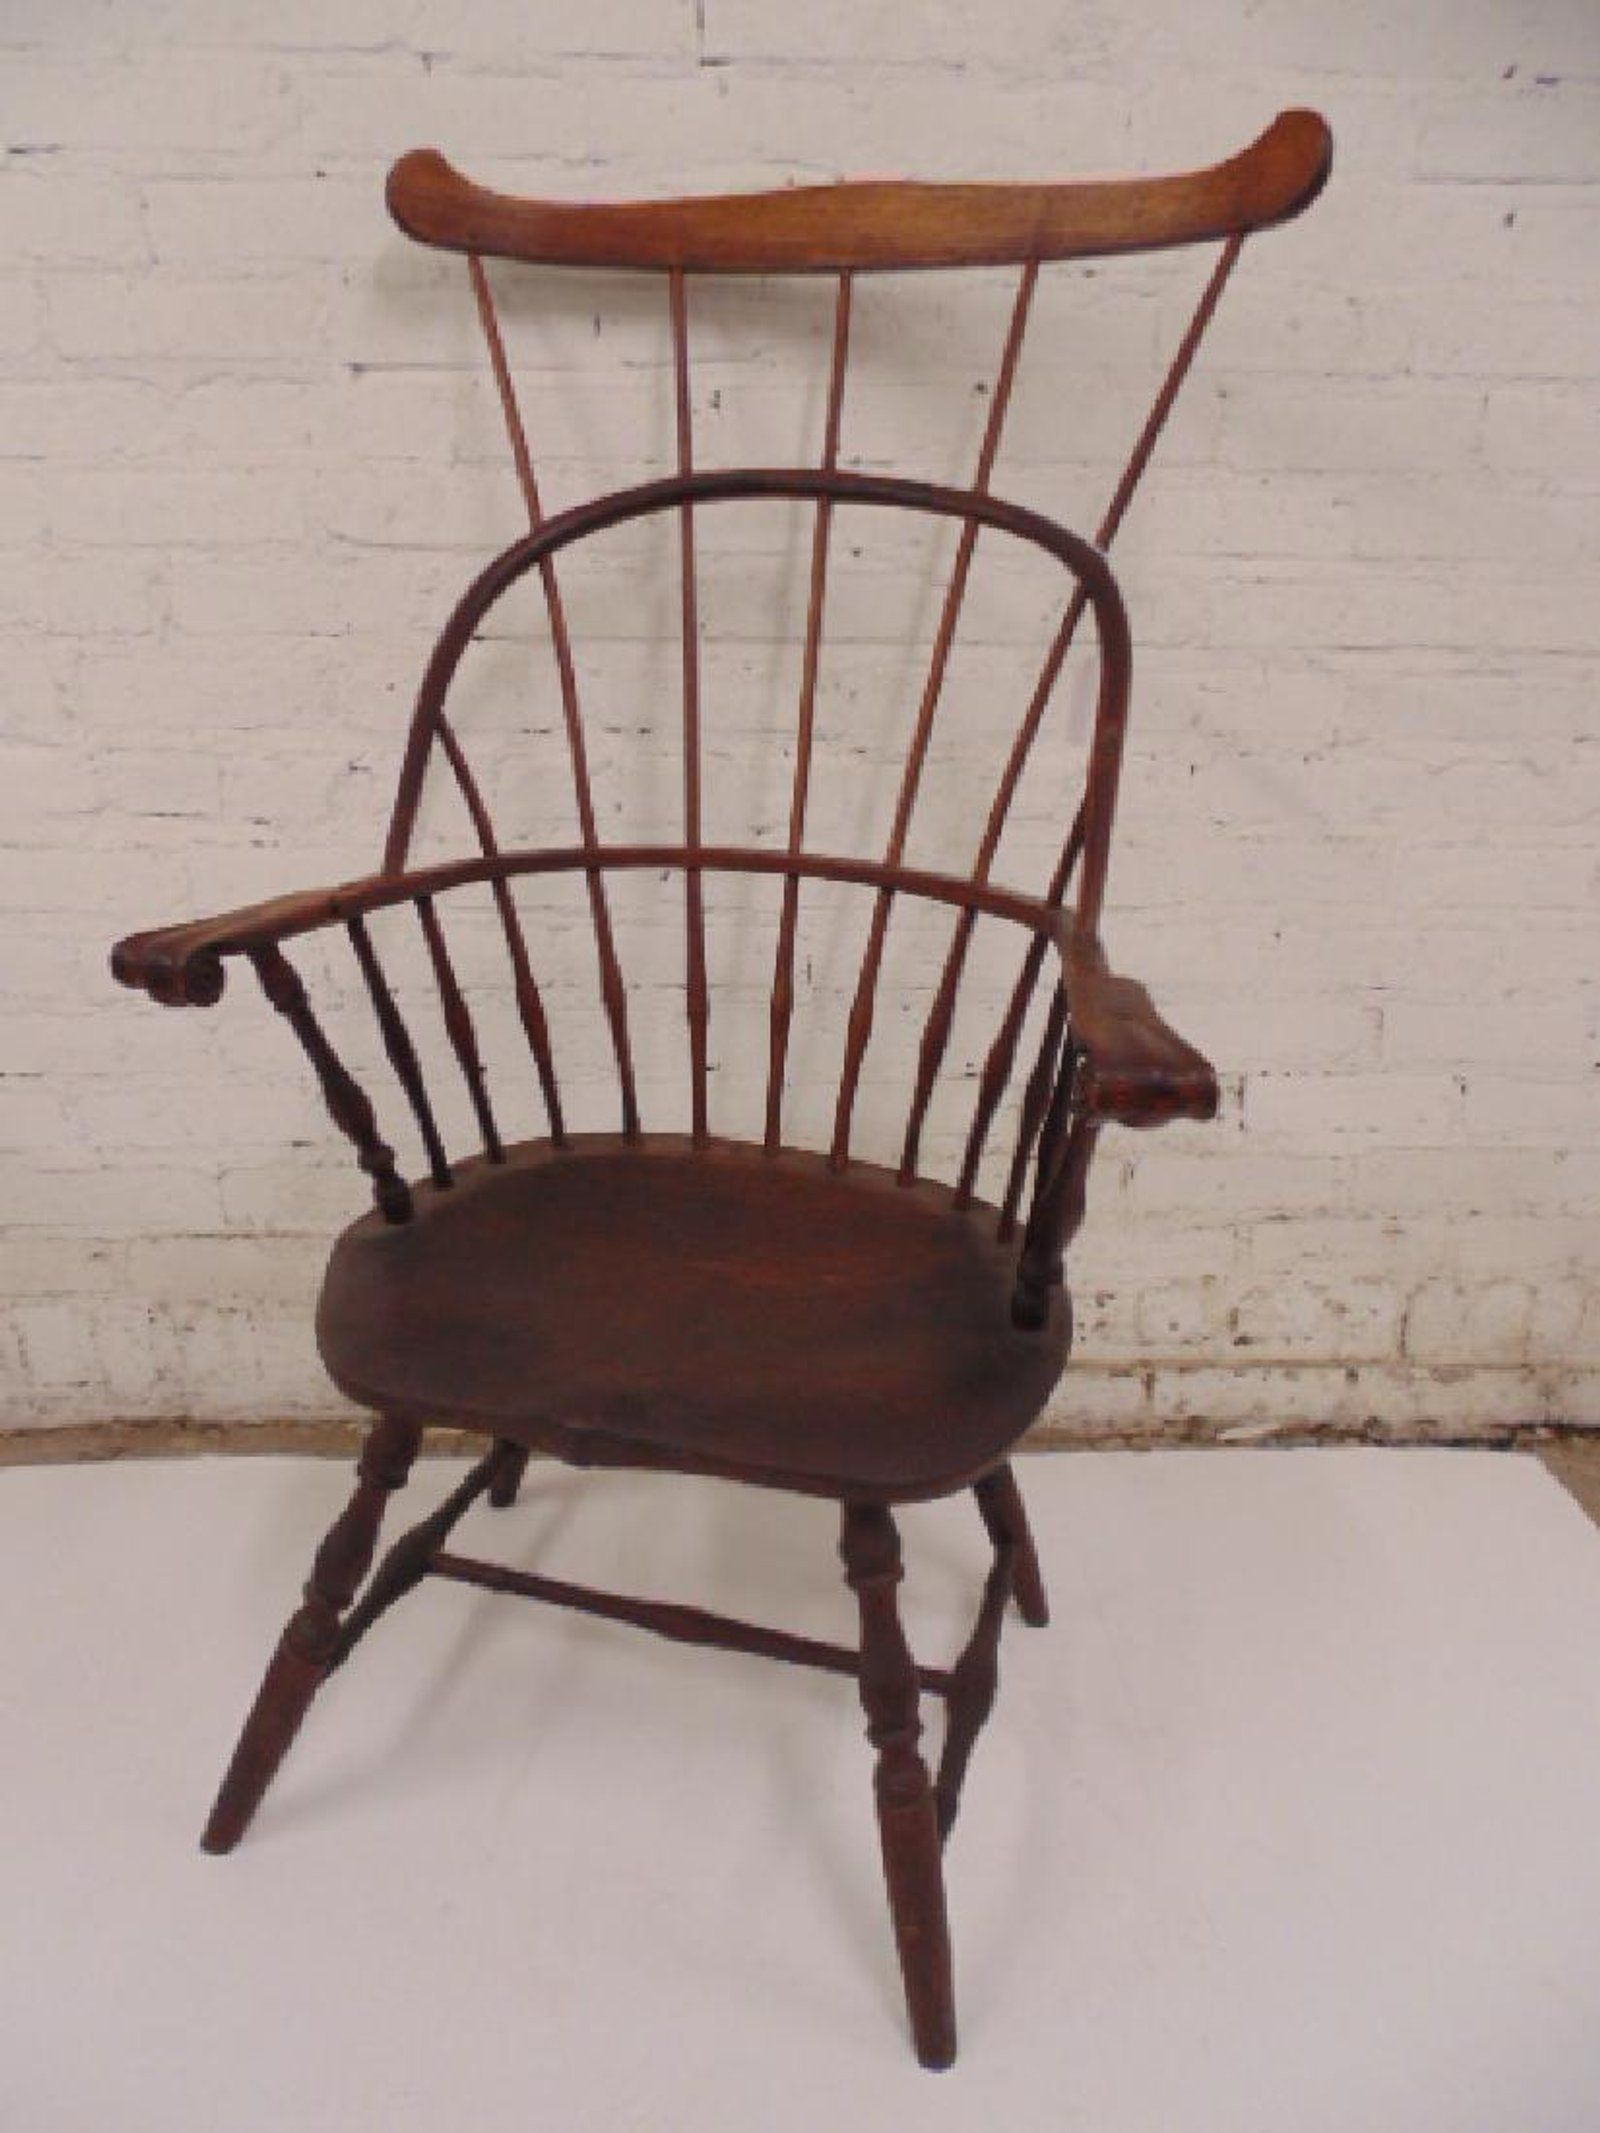 Antique comb windsor arm chair rare windsor arm chair